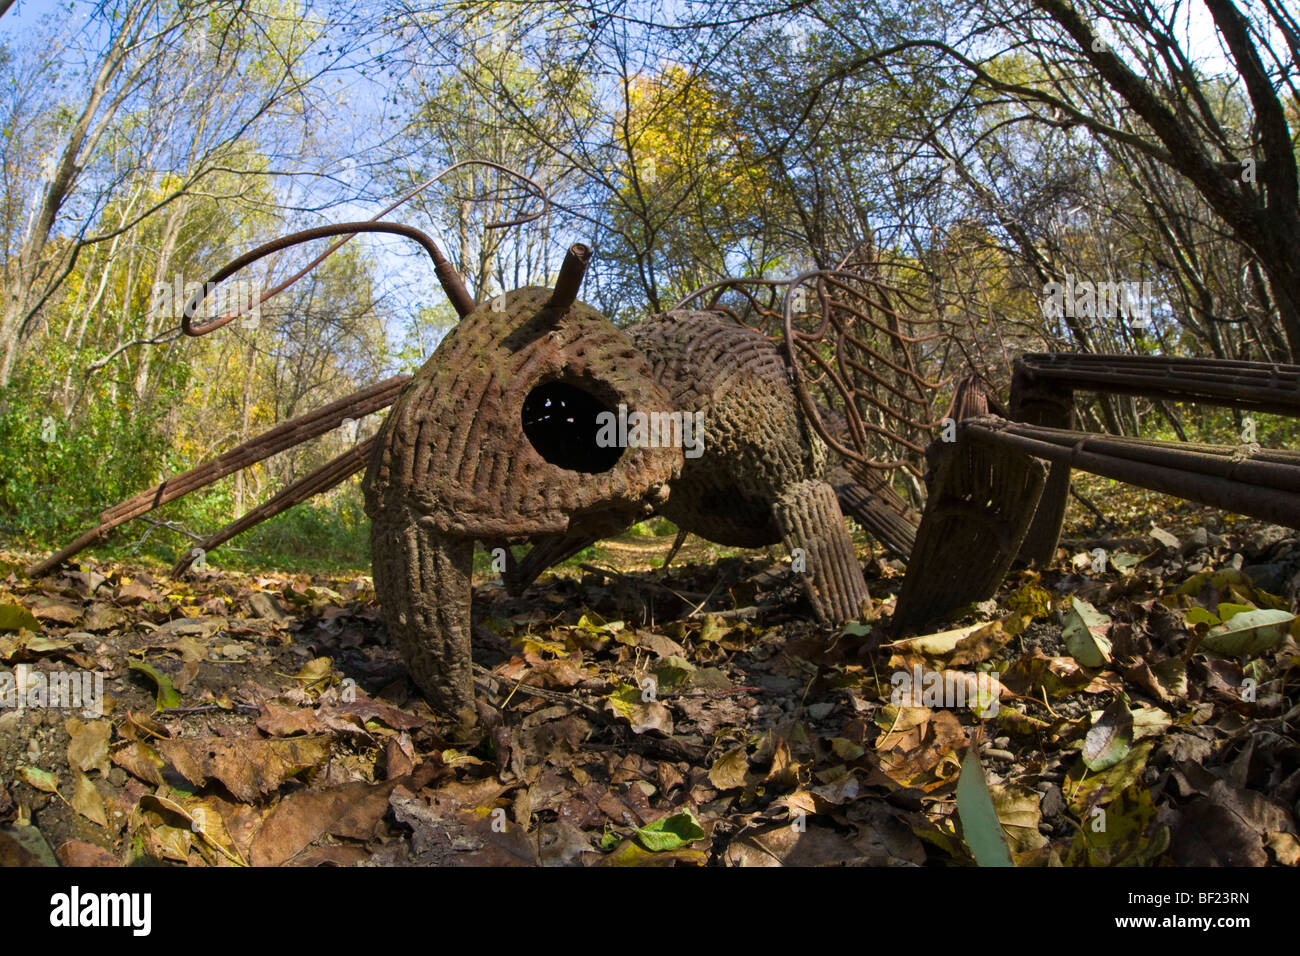 Insect Sculptures Stock Photos & Insect Sculptures Stock Images - Alamy